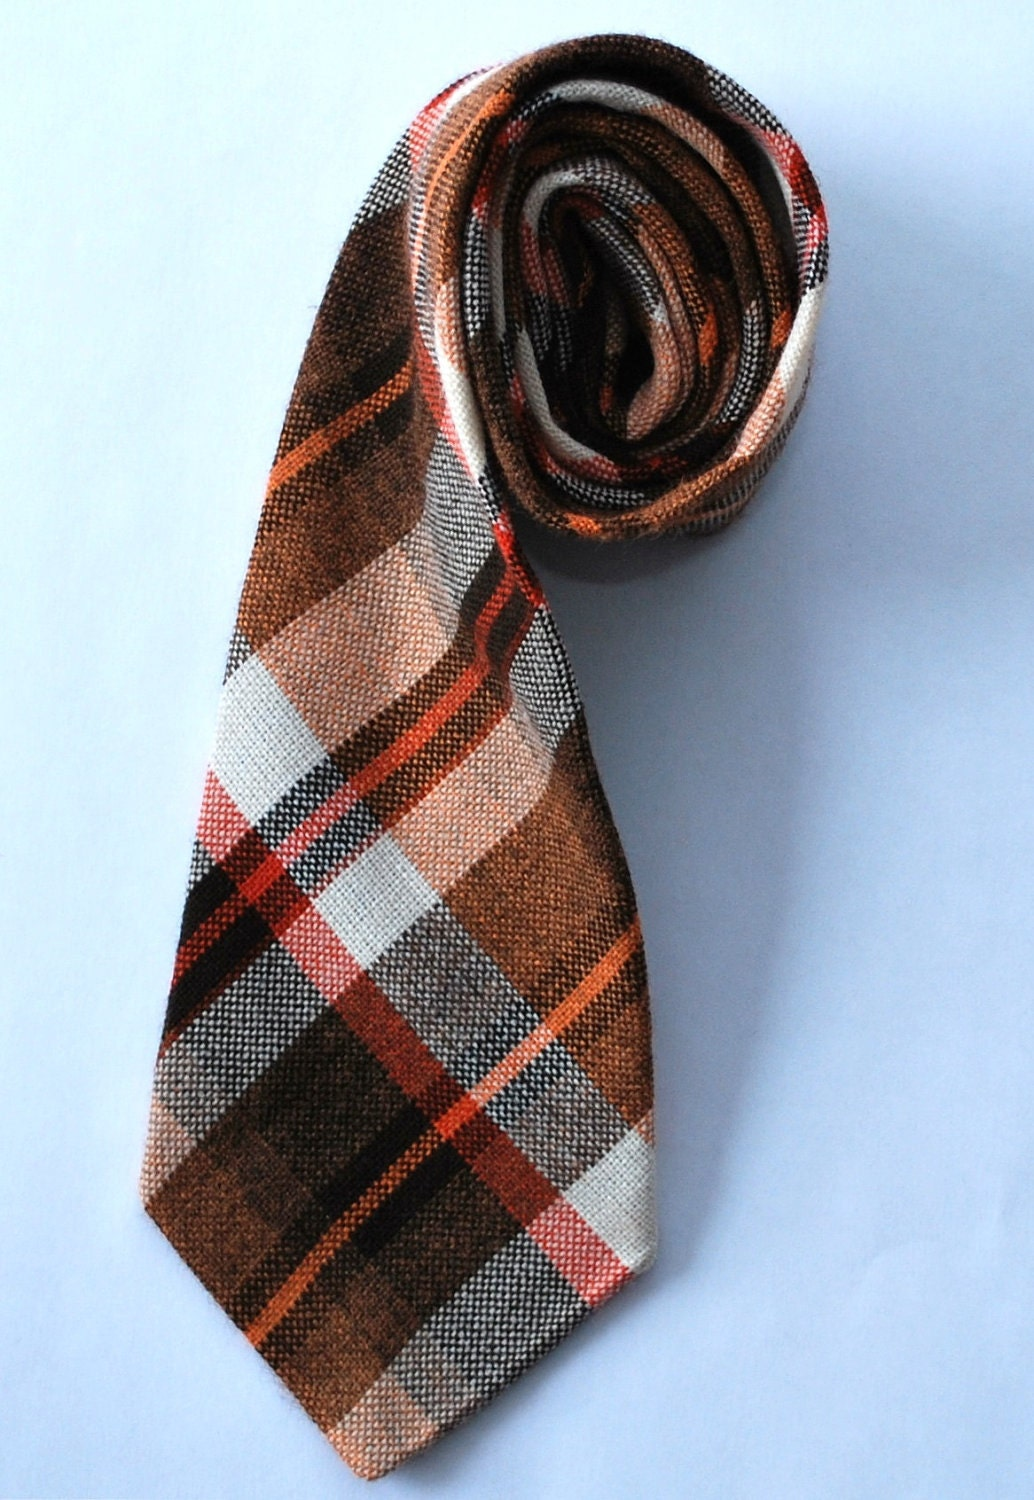 vintage plaid tie brown orange - checked wool mens necktie Distinctive Ties 1960s 1970s